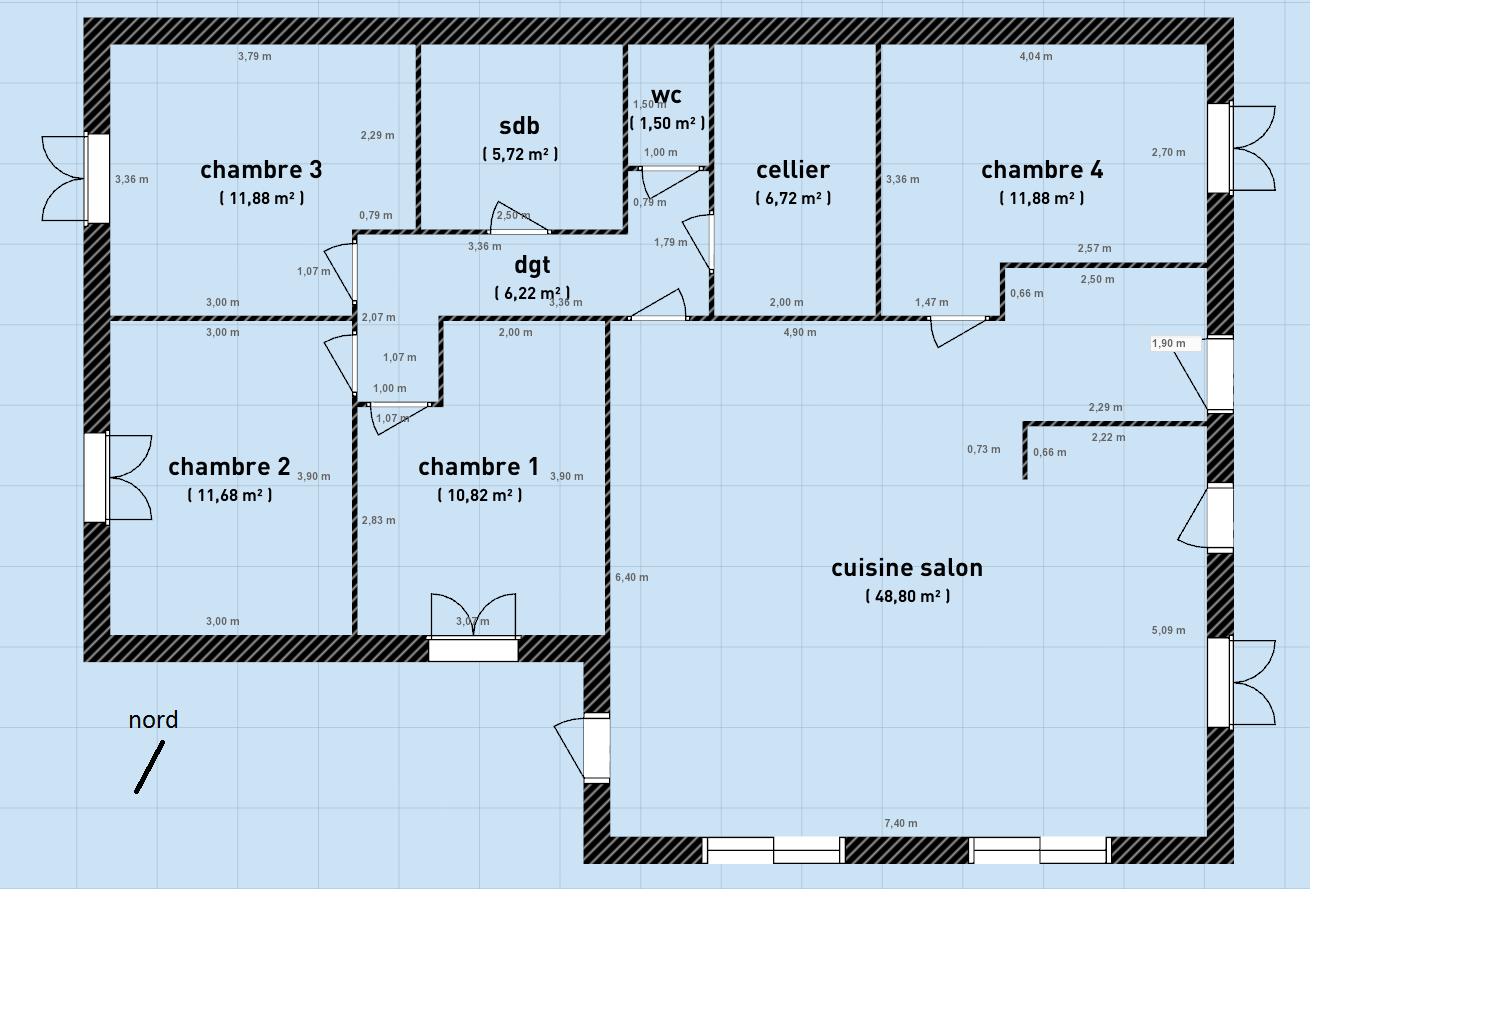 Maison 150m2 plain pied conceptions de la maison for Plain pied plan